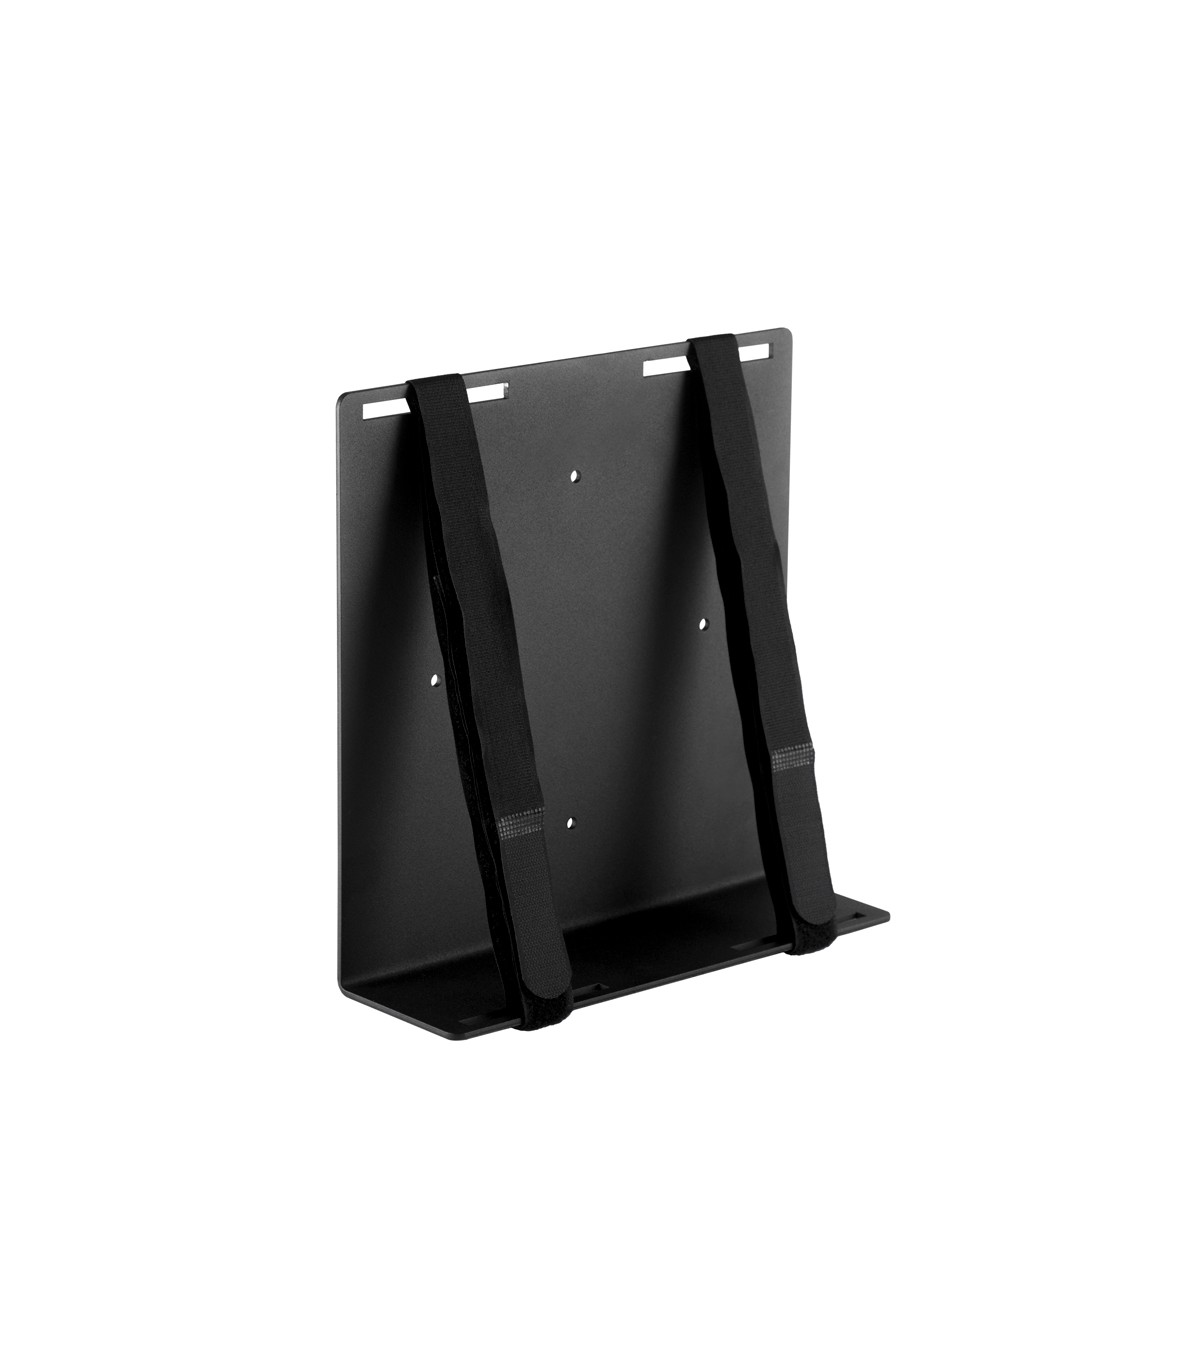 Universal Pc Mount 300 Adjustable Computer Wall Mount